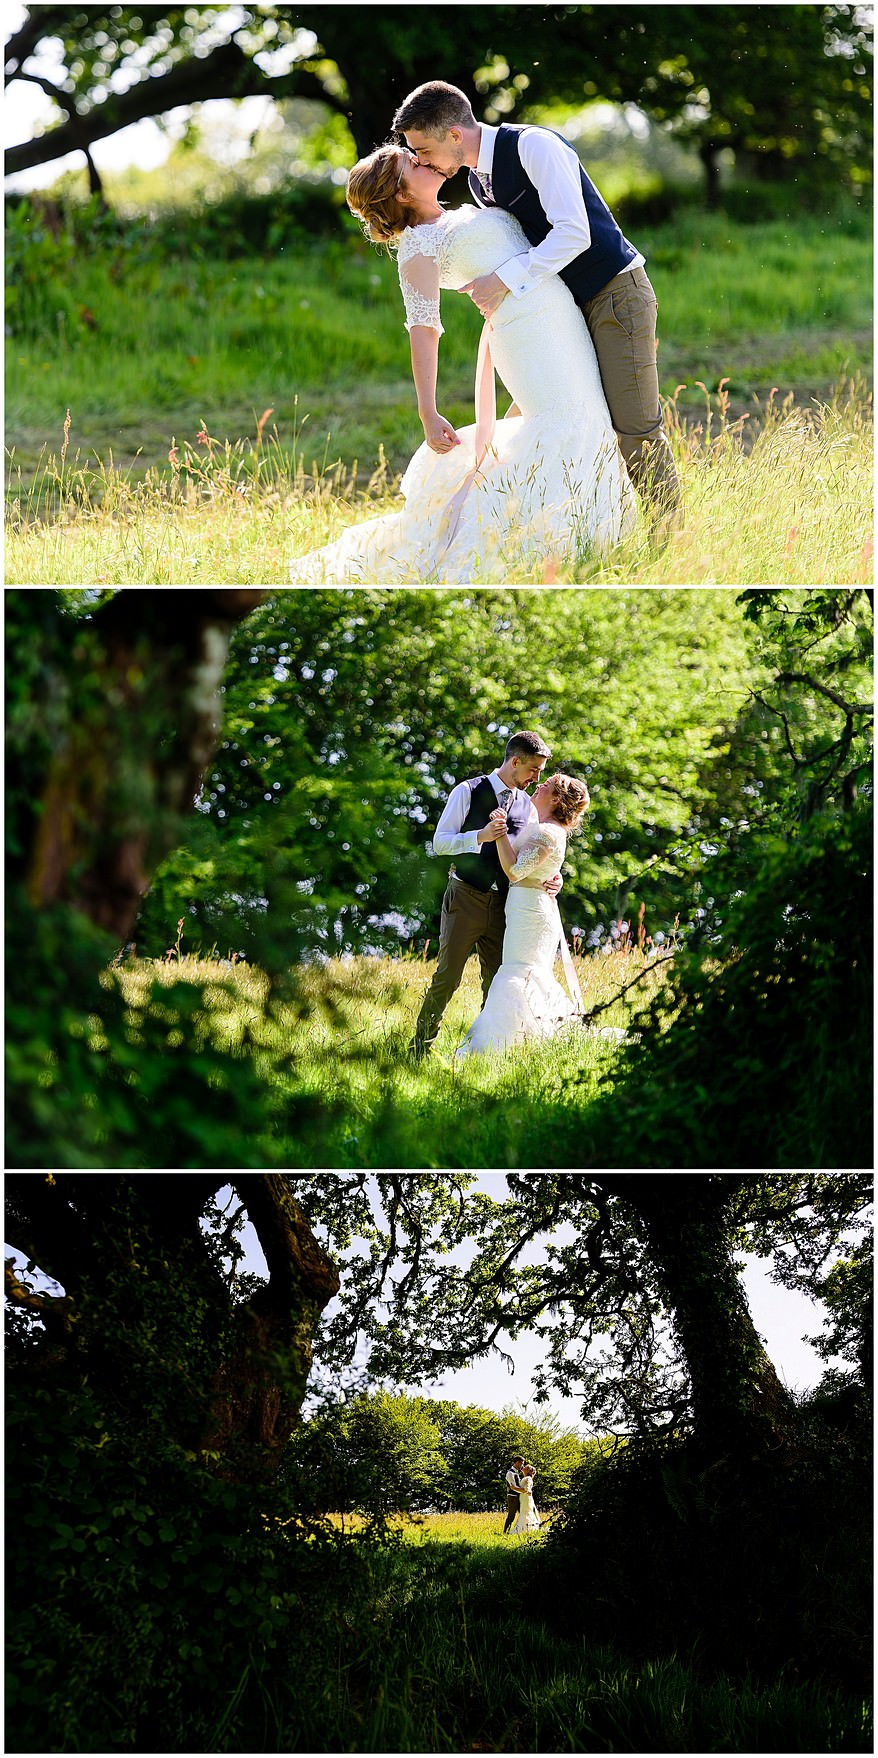 Trevenna barns recommended wedding photographer